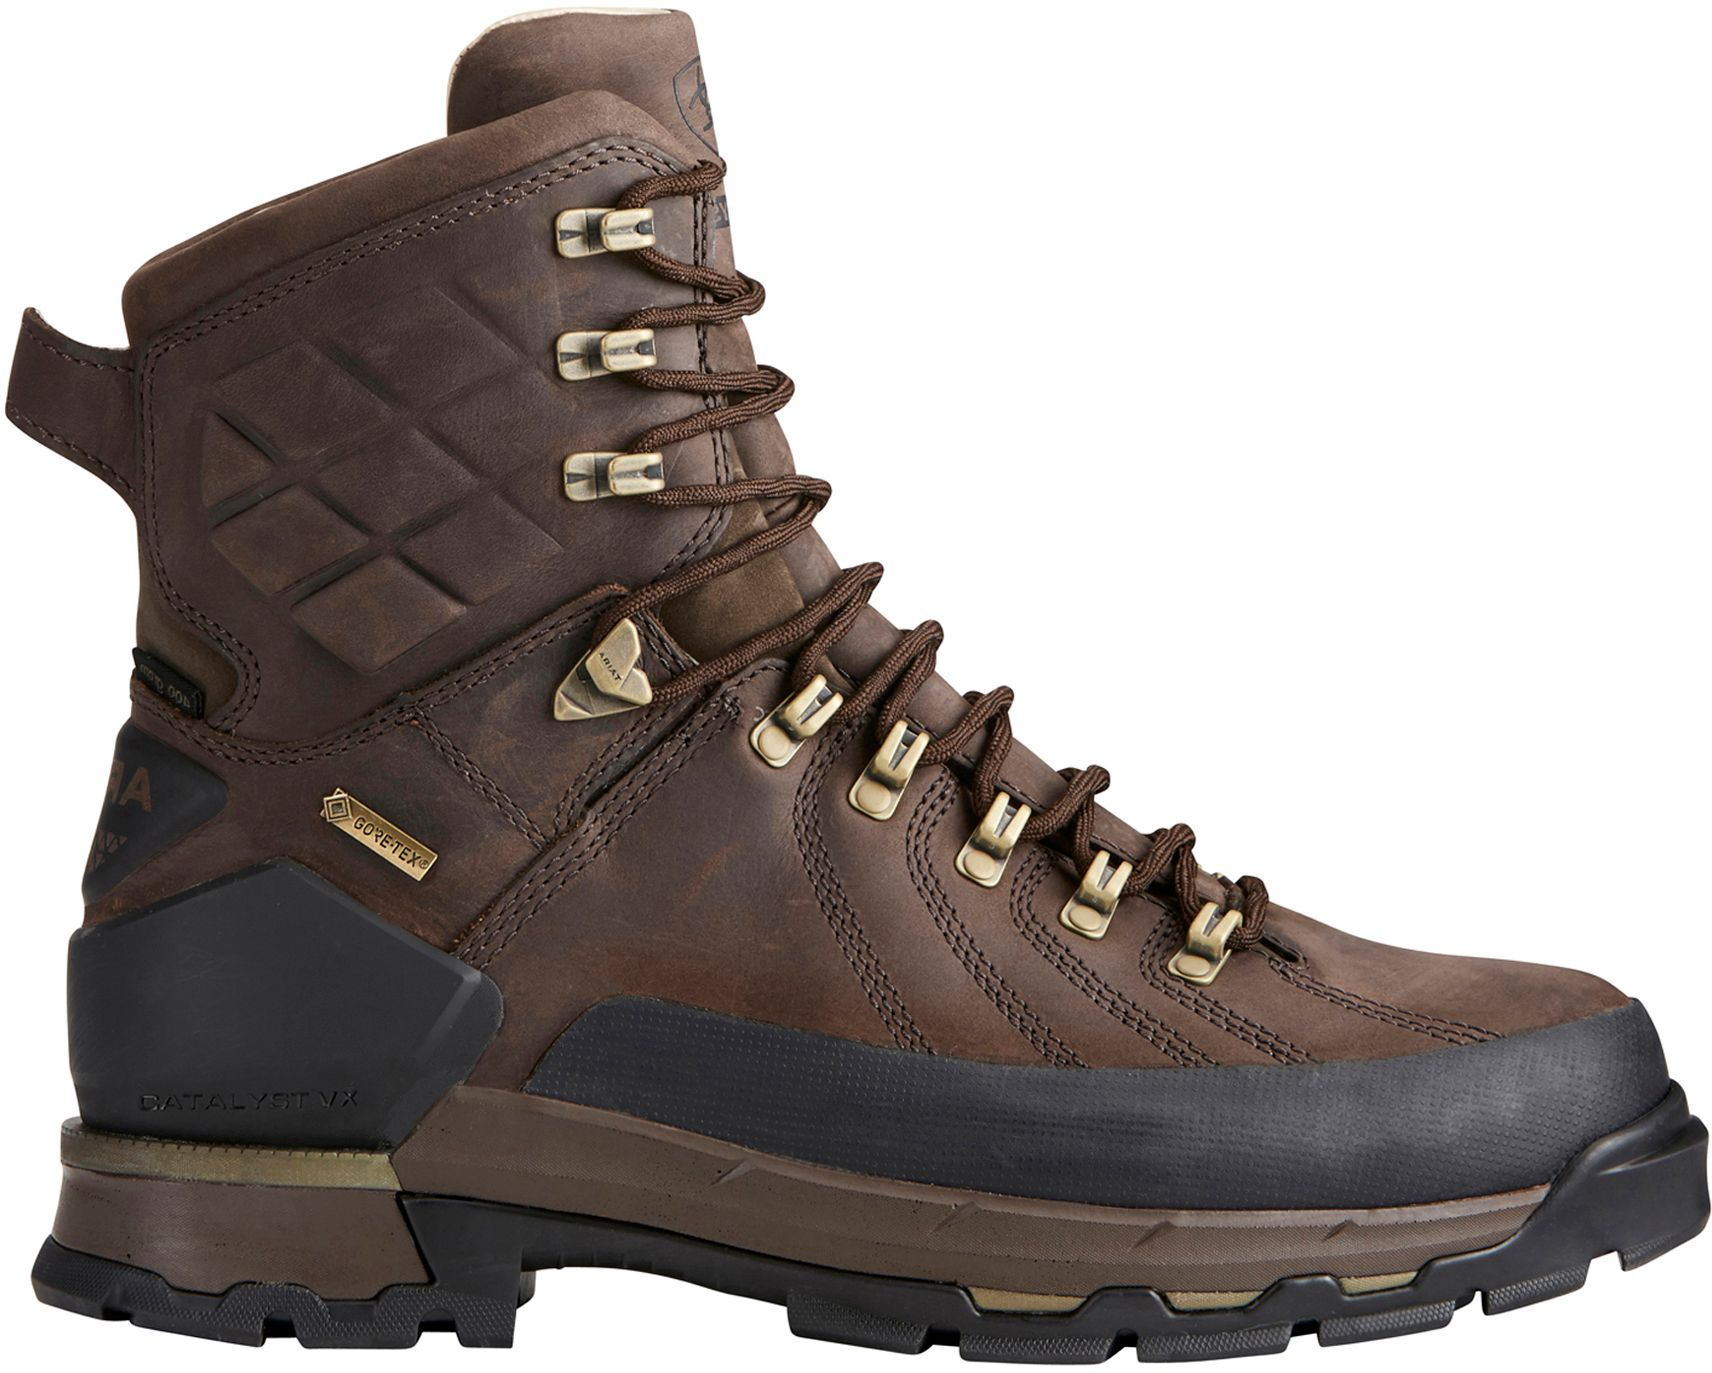 Ariat Men's Catalyst Defiant 8'' 400g GORE-TEX Field Hunting Boots, Size: 8.0, Brown thumbnail